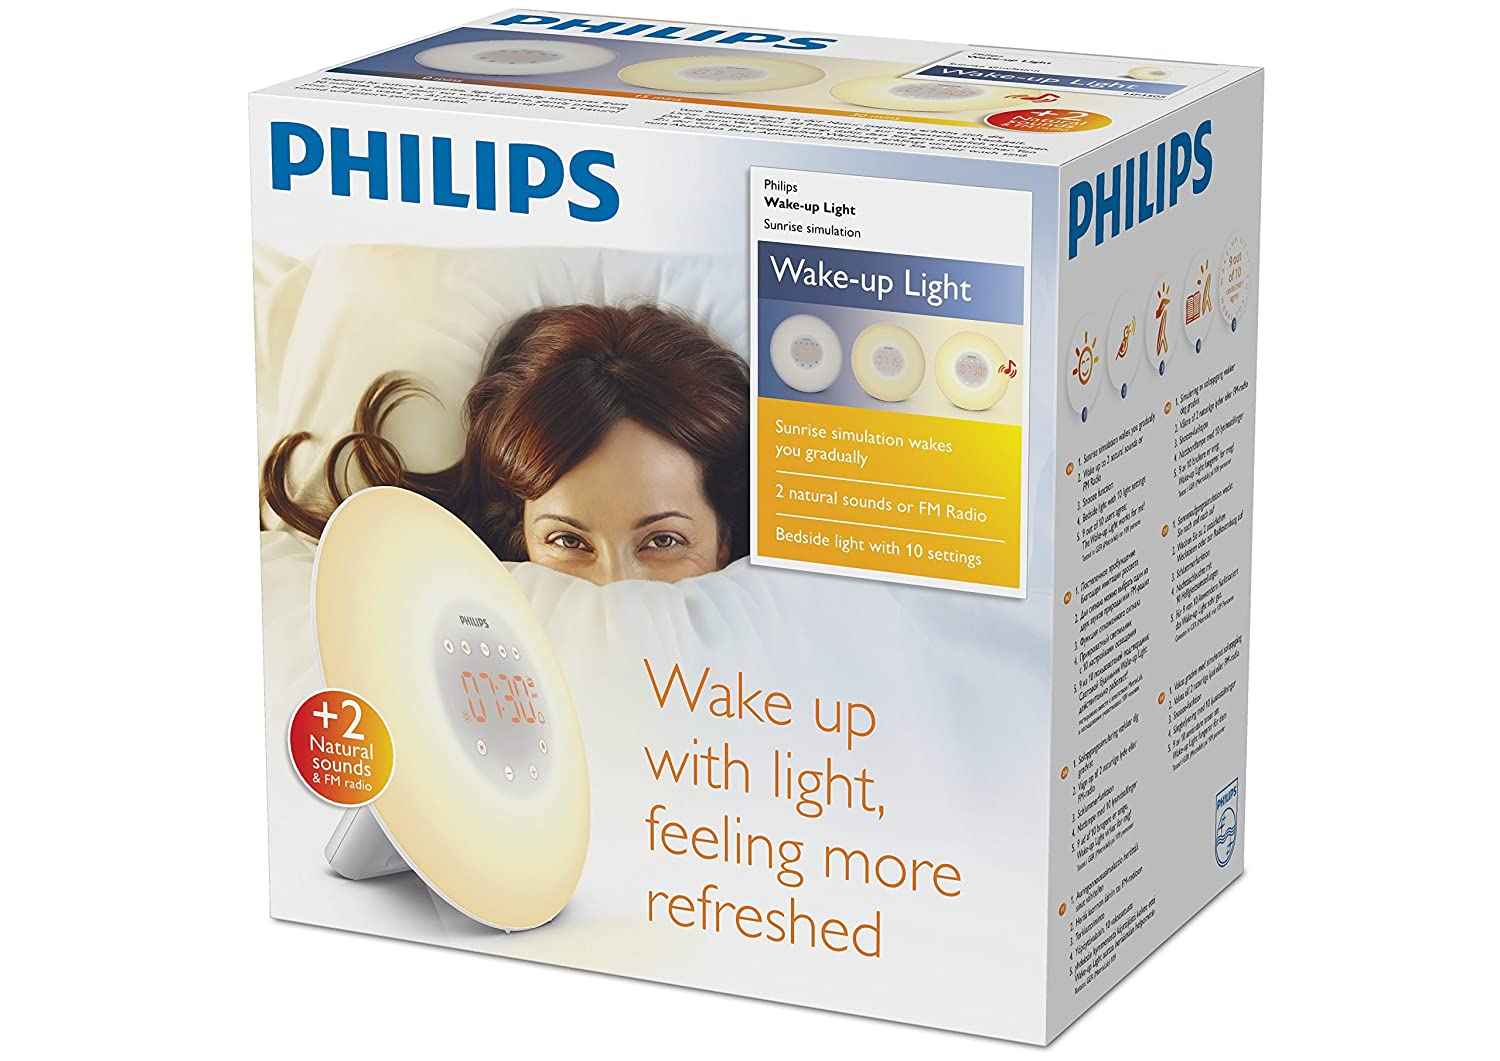 Philips Wake-Up Light Alarm Clock HF3505/01 with Sunrise Simulation - 2  Natural Sounds and Radio: Amazon.co.uk: Health & Personal Care